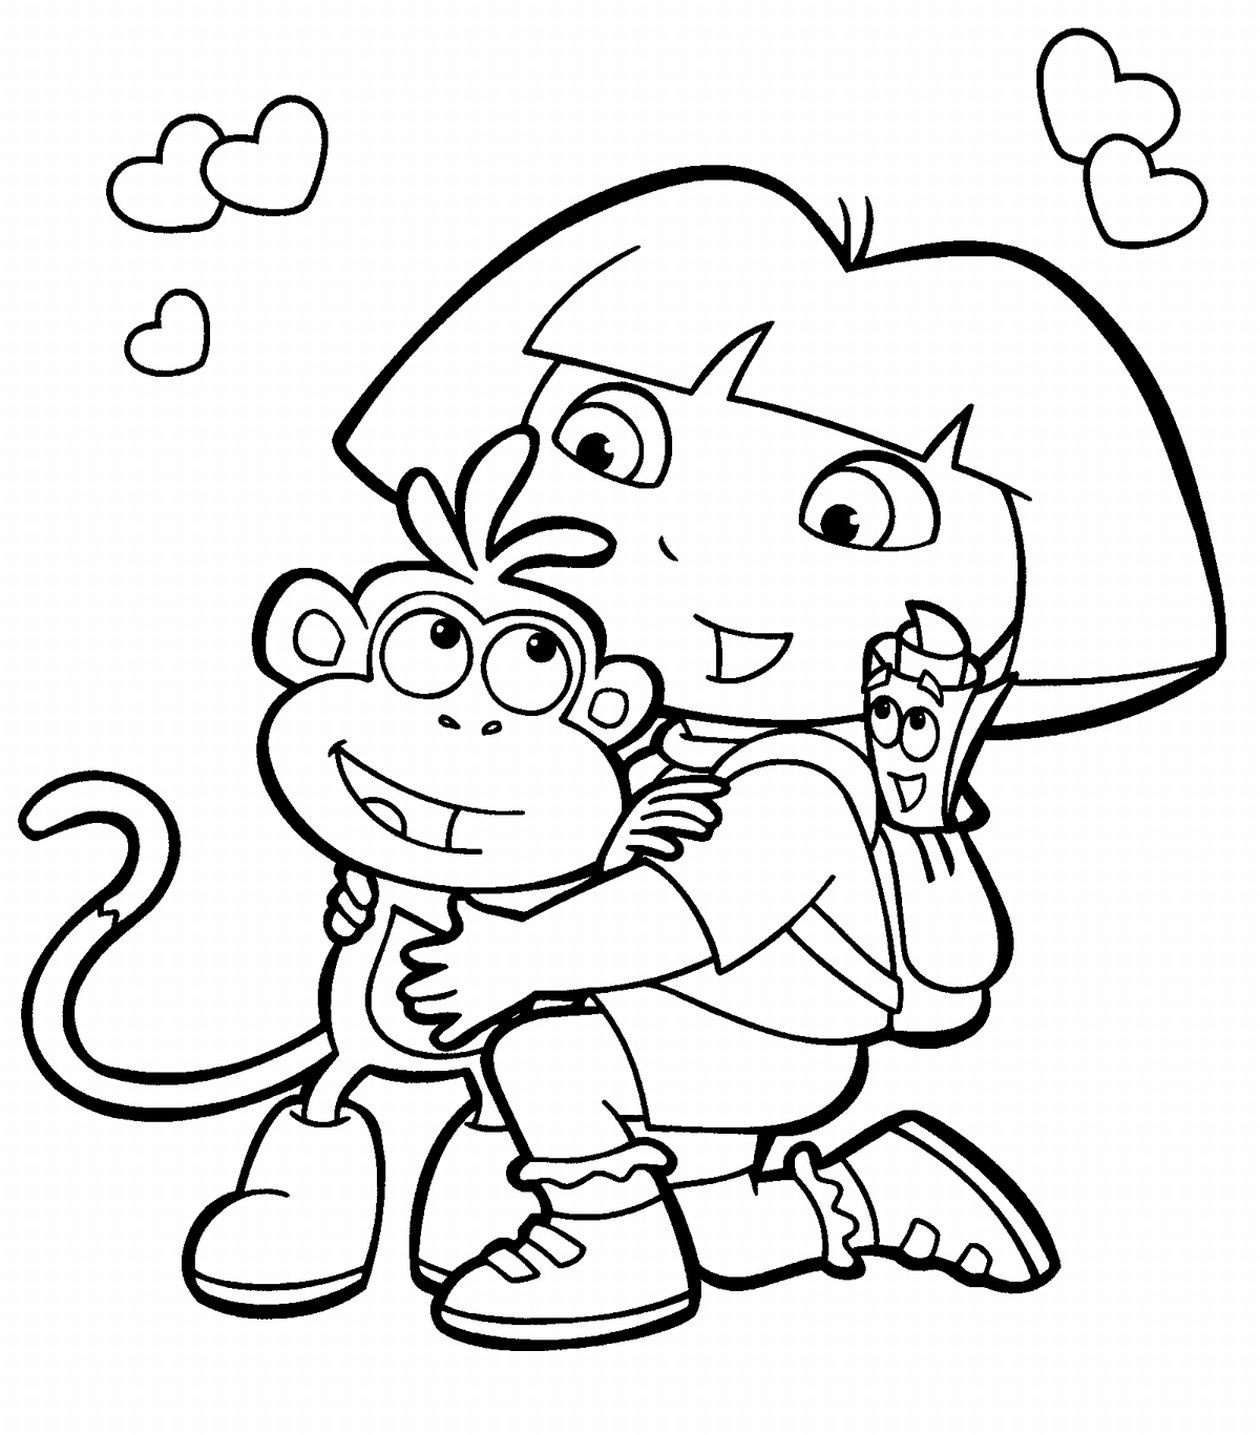 1260x1435 Best Free Printable Coloring Pages For Kids And Teens